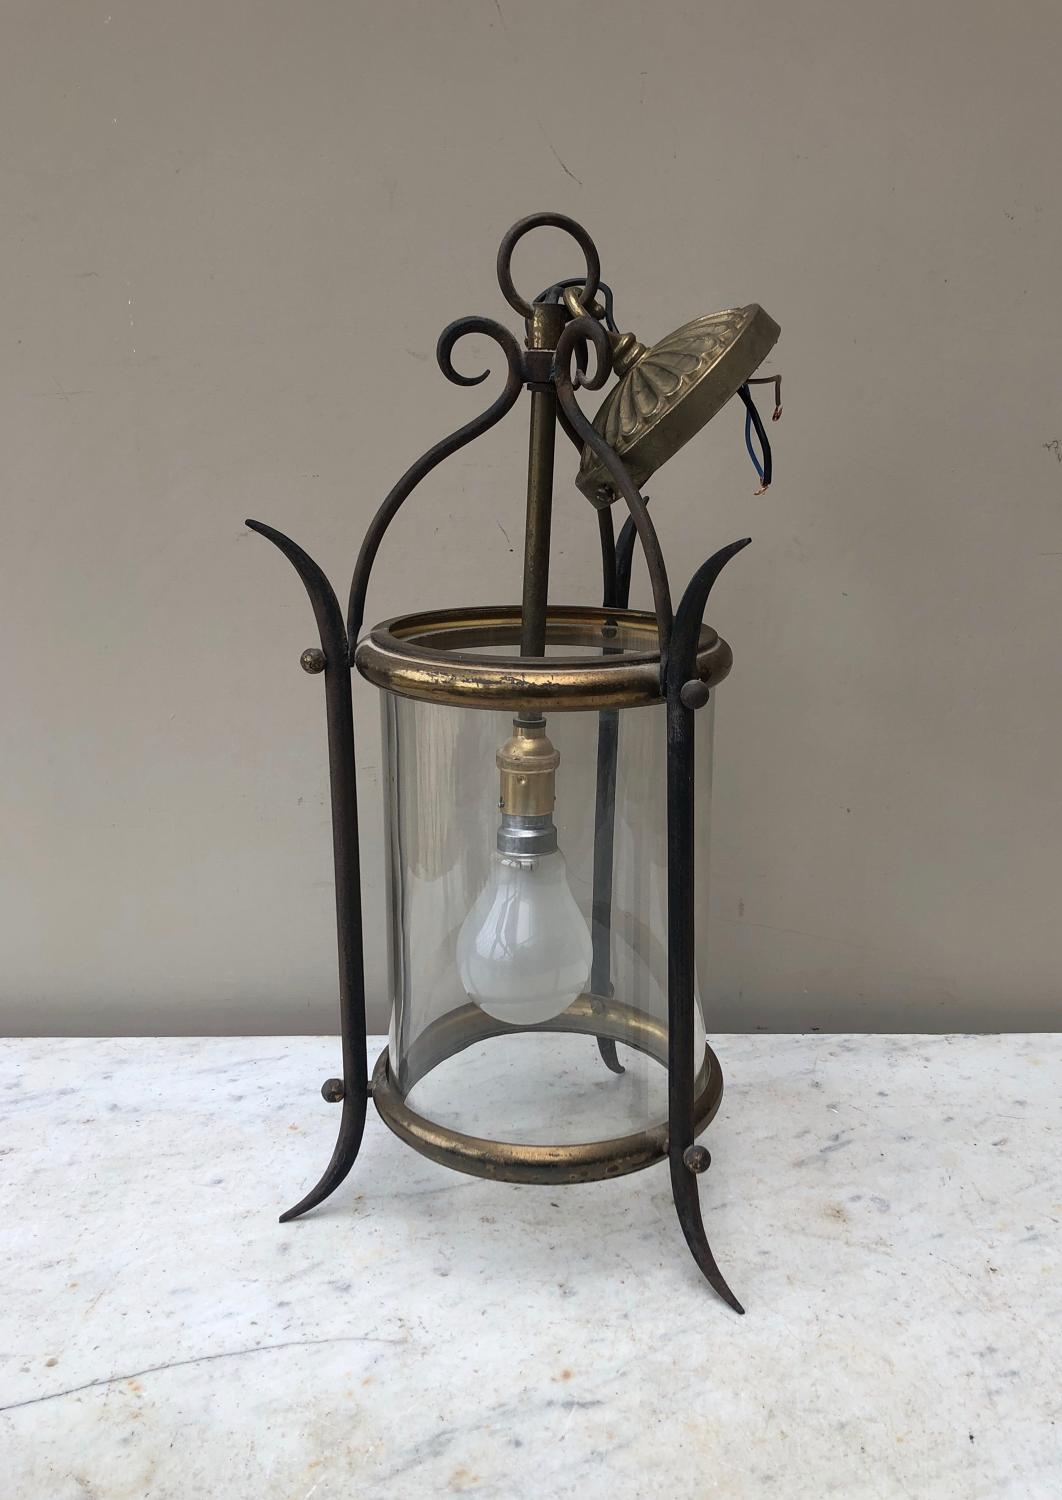 Early 20th Century Iron Lantern - Fully Wired - Ready to Hang